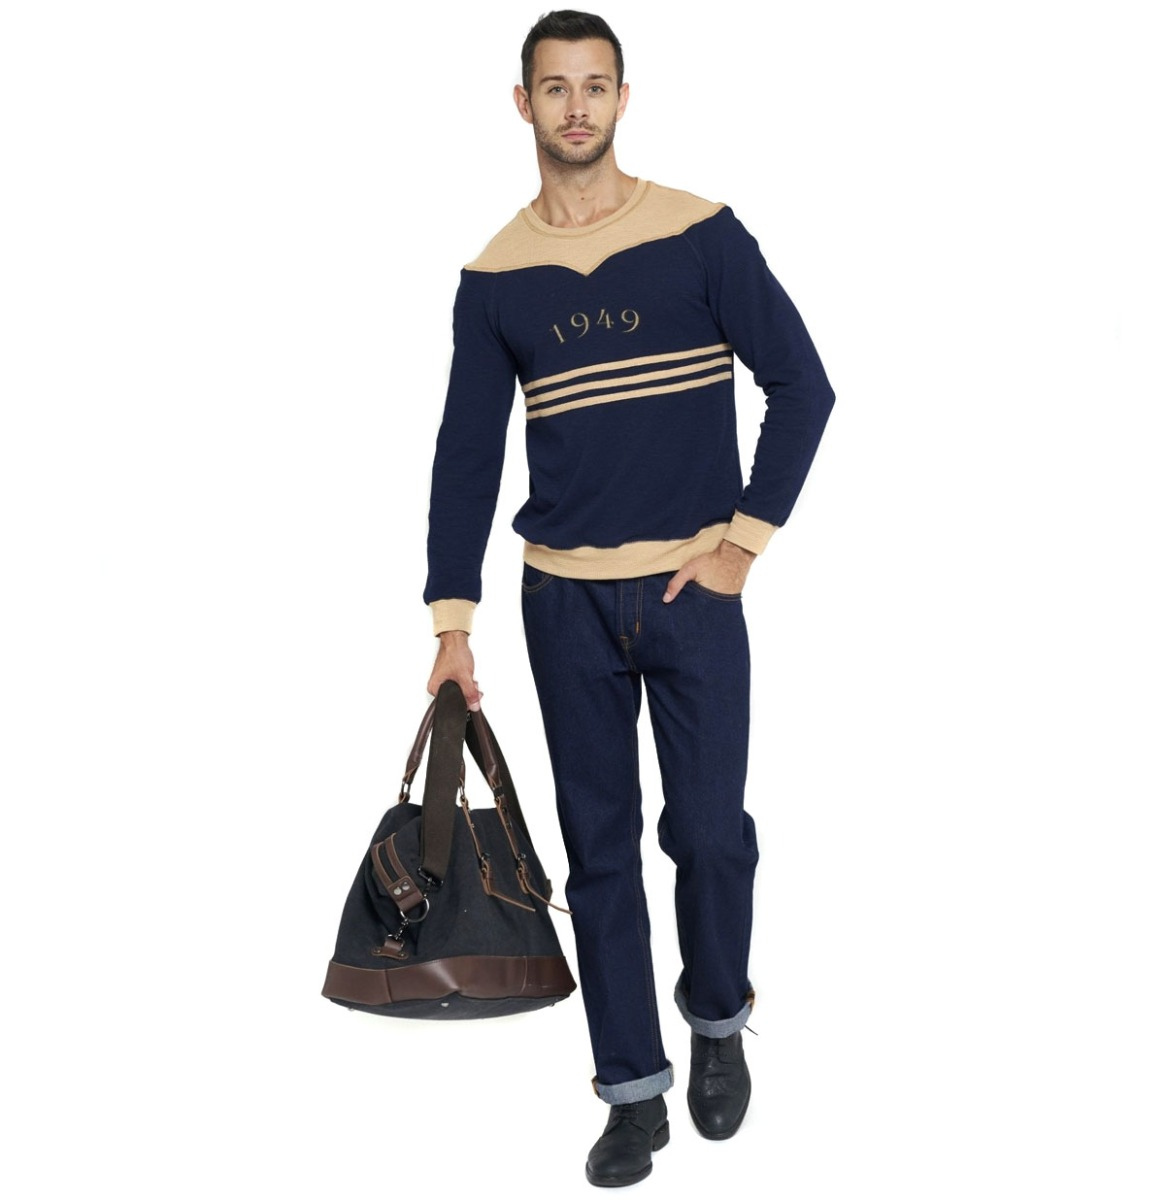 Collectif Tommy 1949 Gestreepte Trui Donkerblauw / Creme